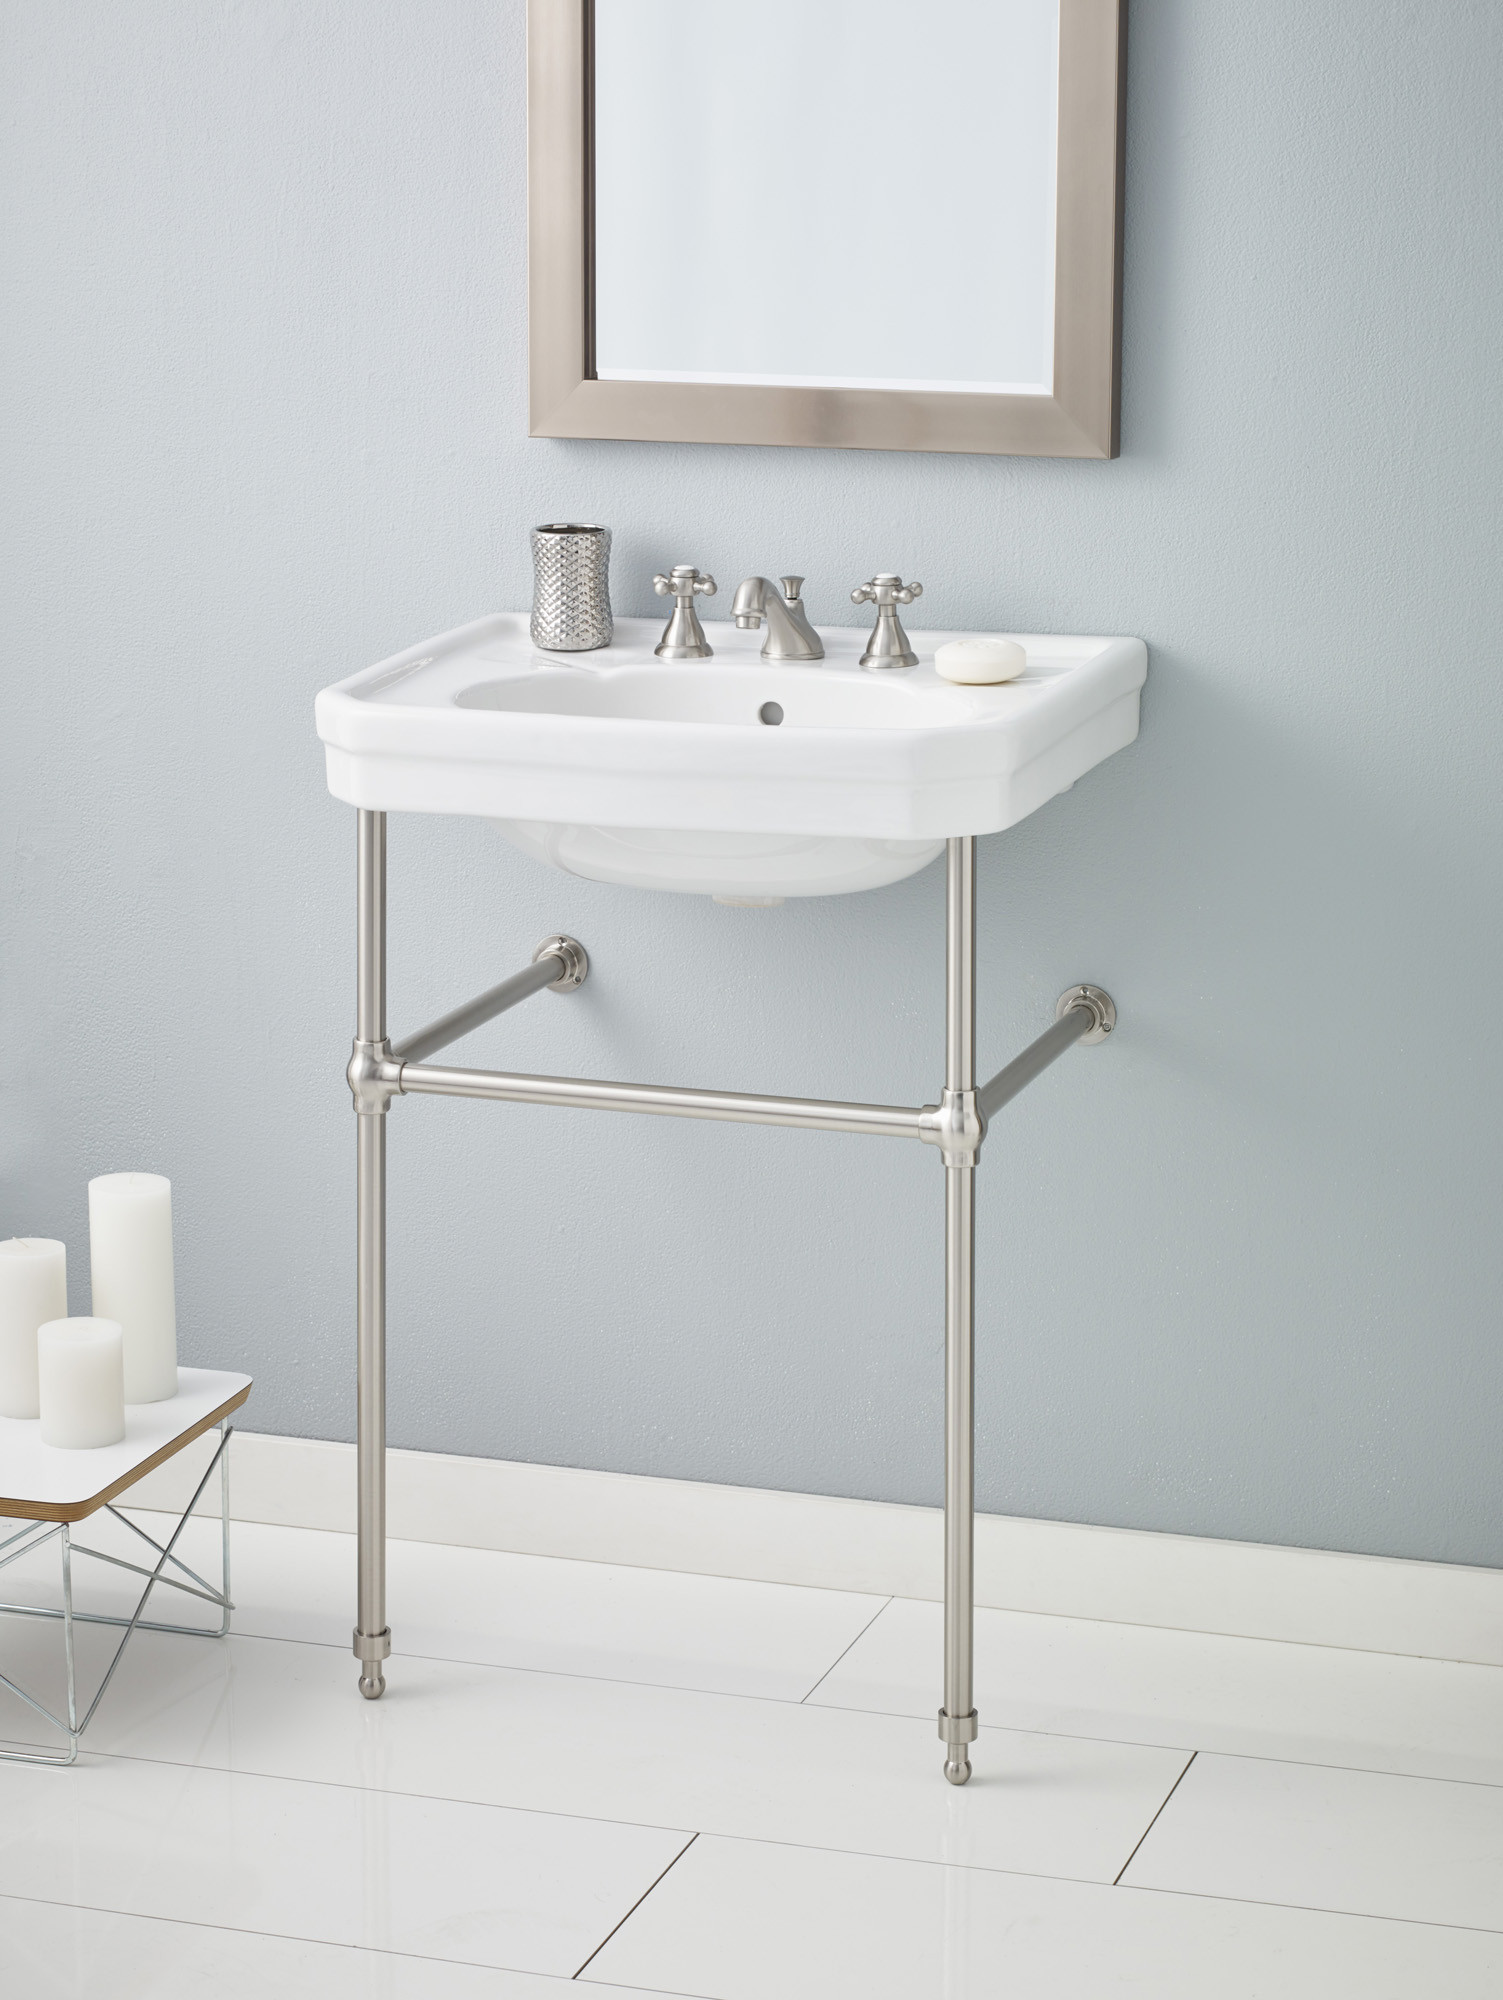 Cheviot 511-25-WH-8-575-BN Mayfair Lavatory Sink with Brushed Nickel Console Stand